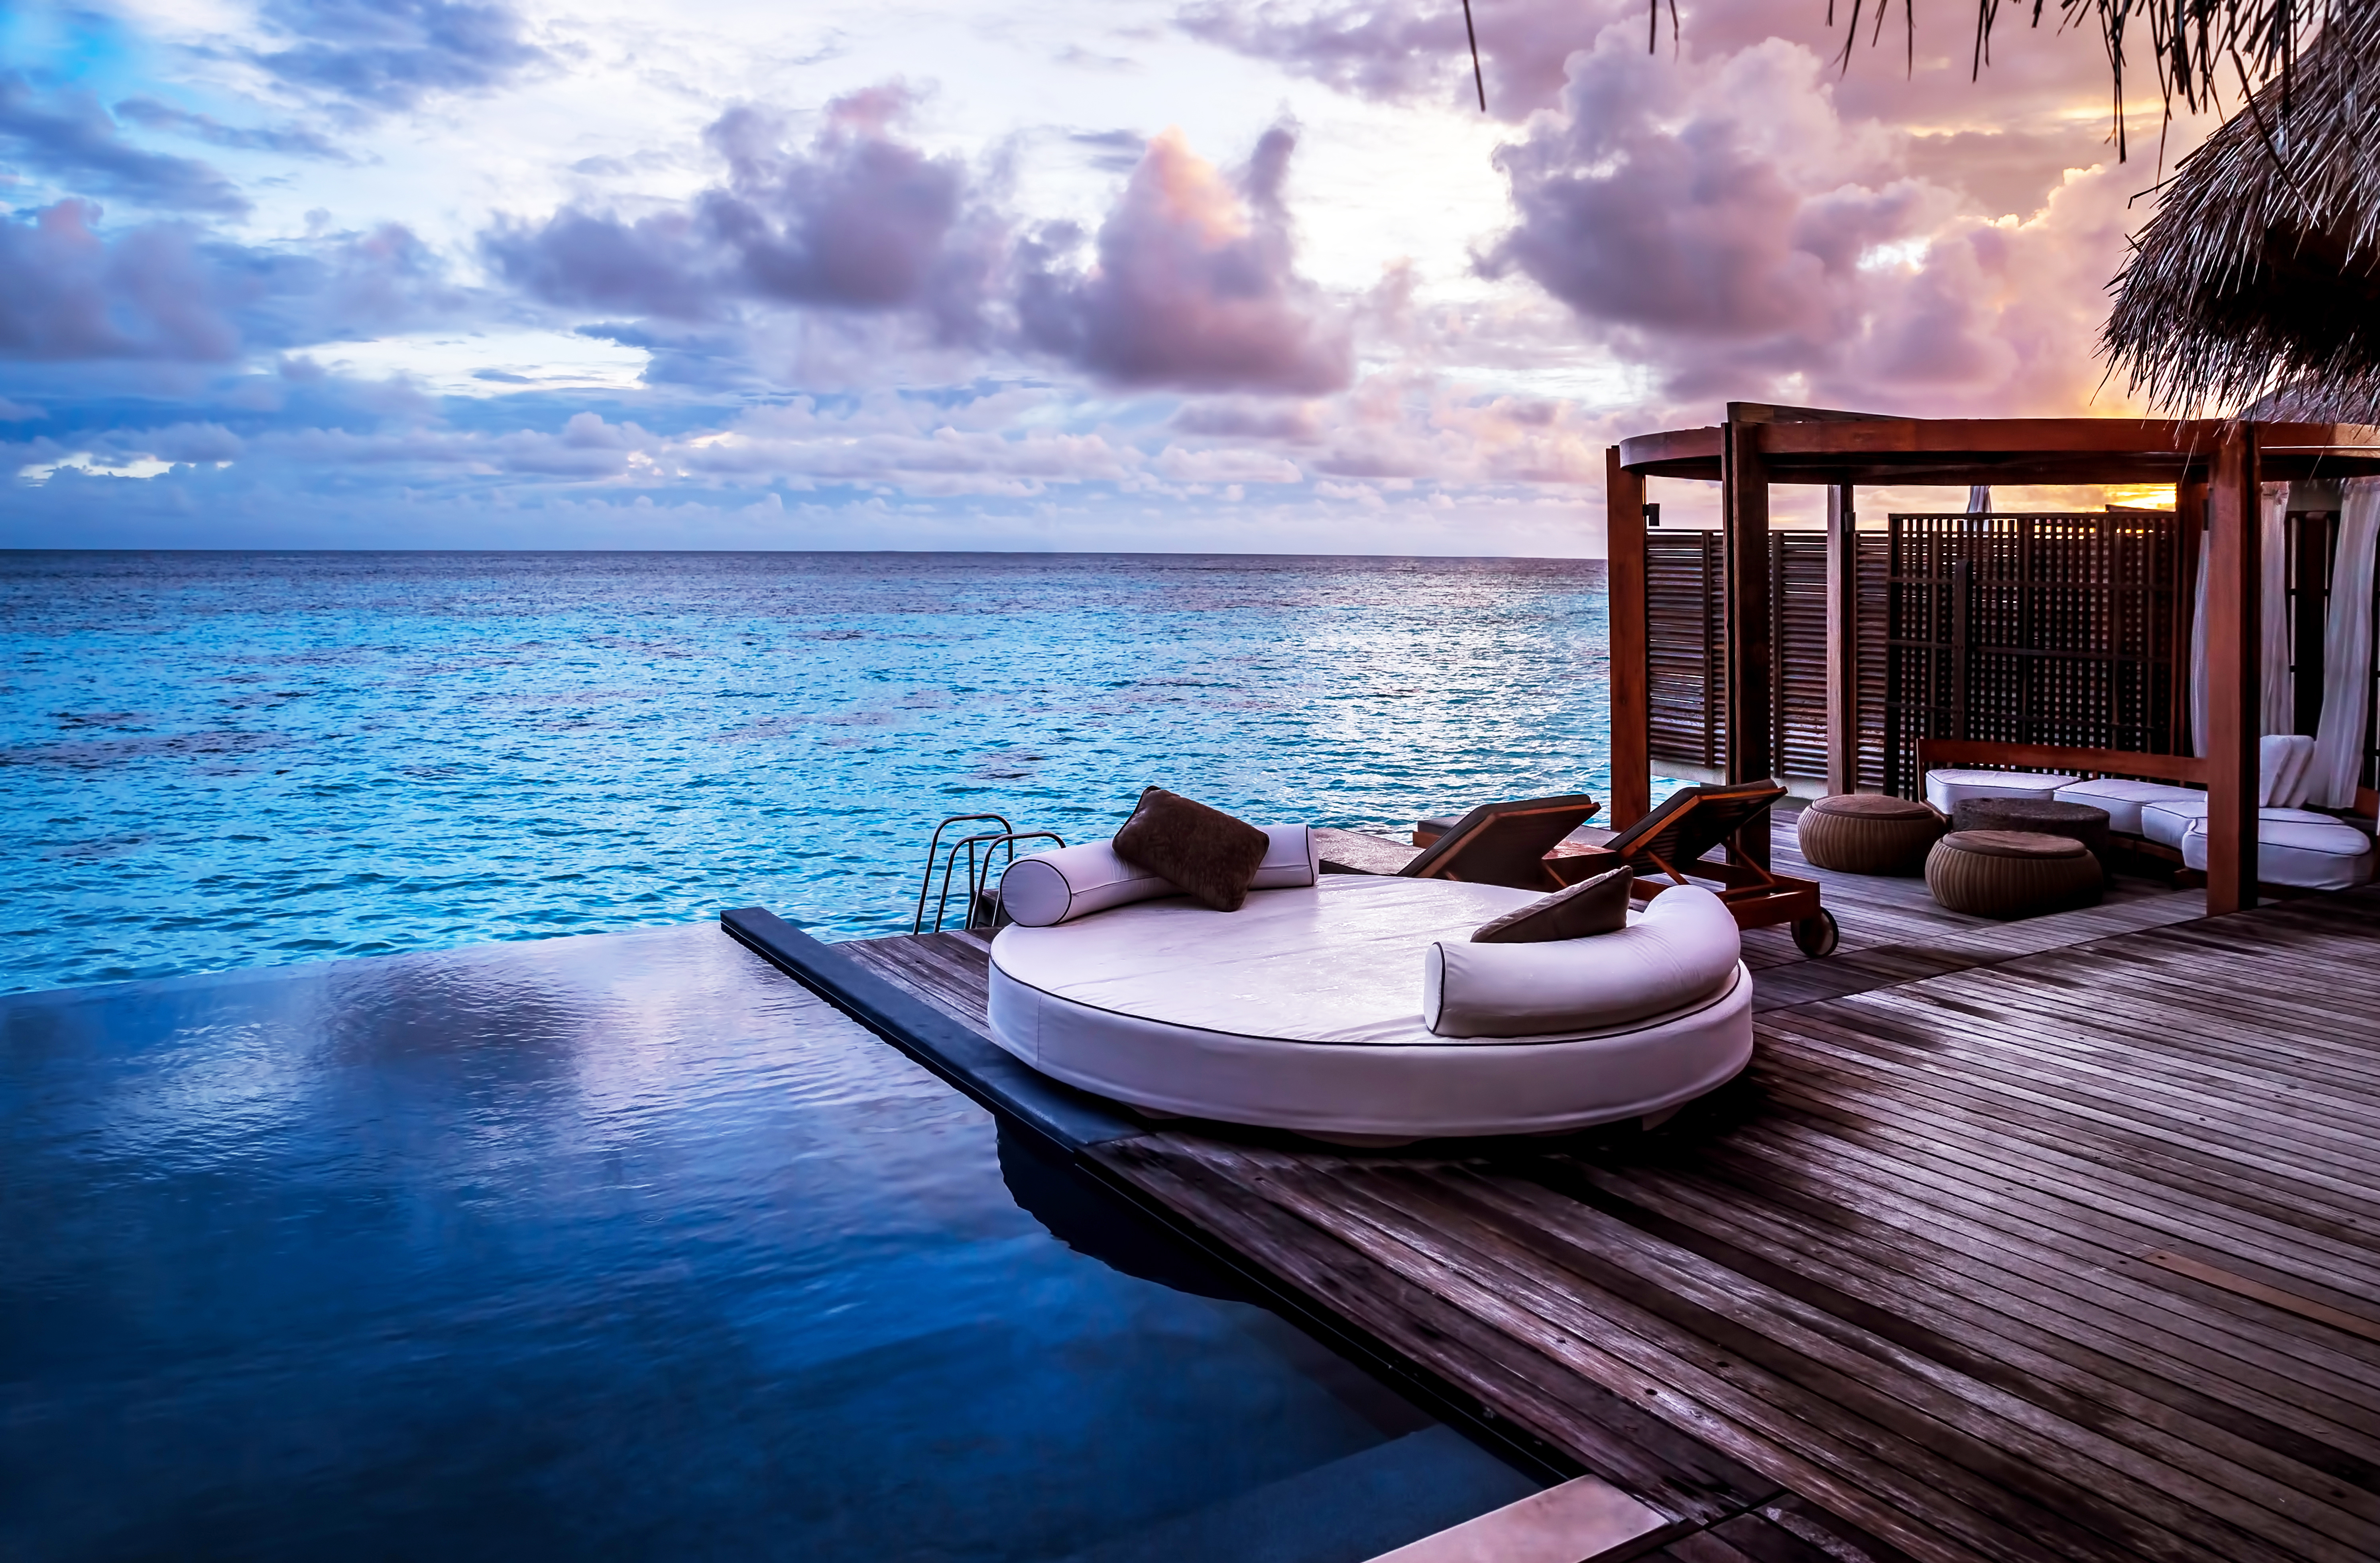 10 Luxury Travellers' Dream Destinations for 2016